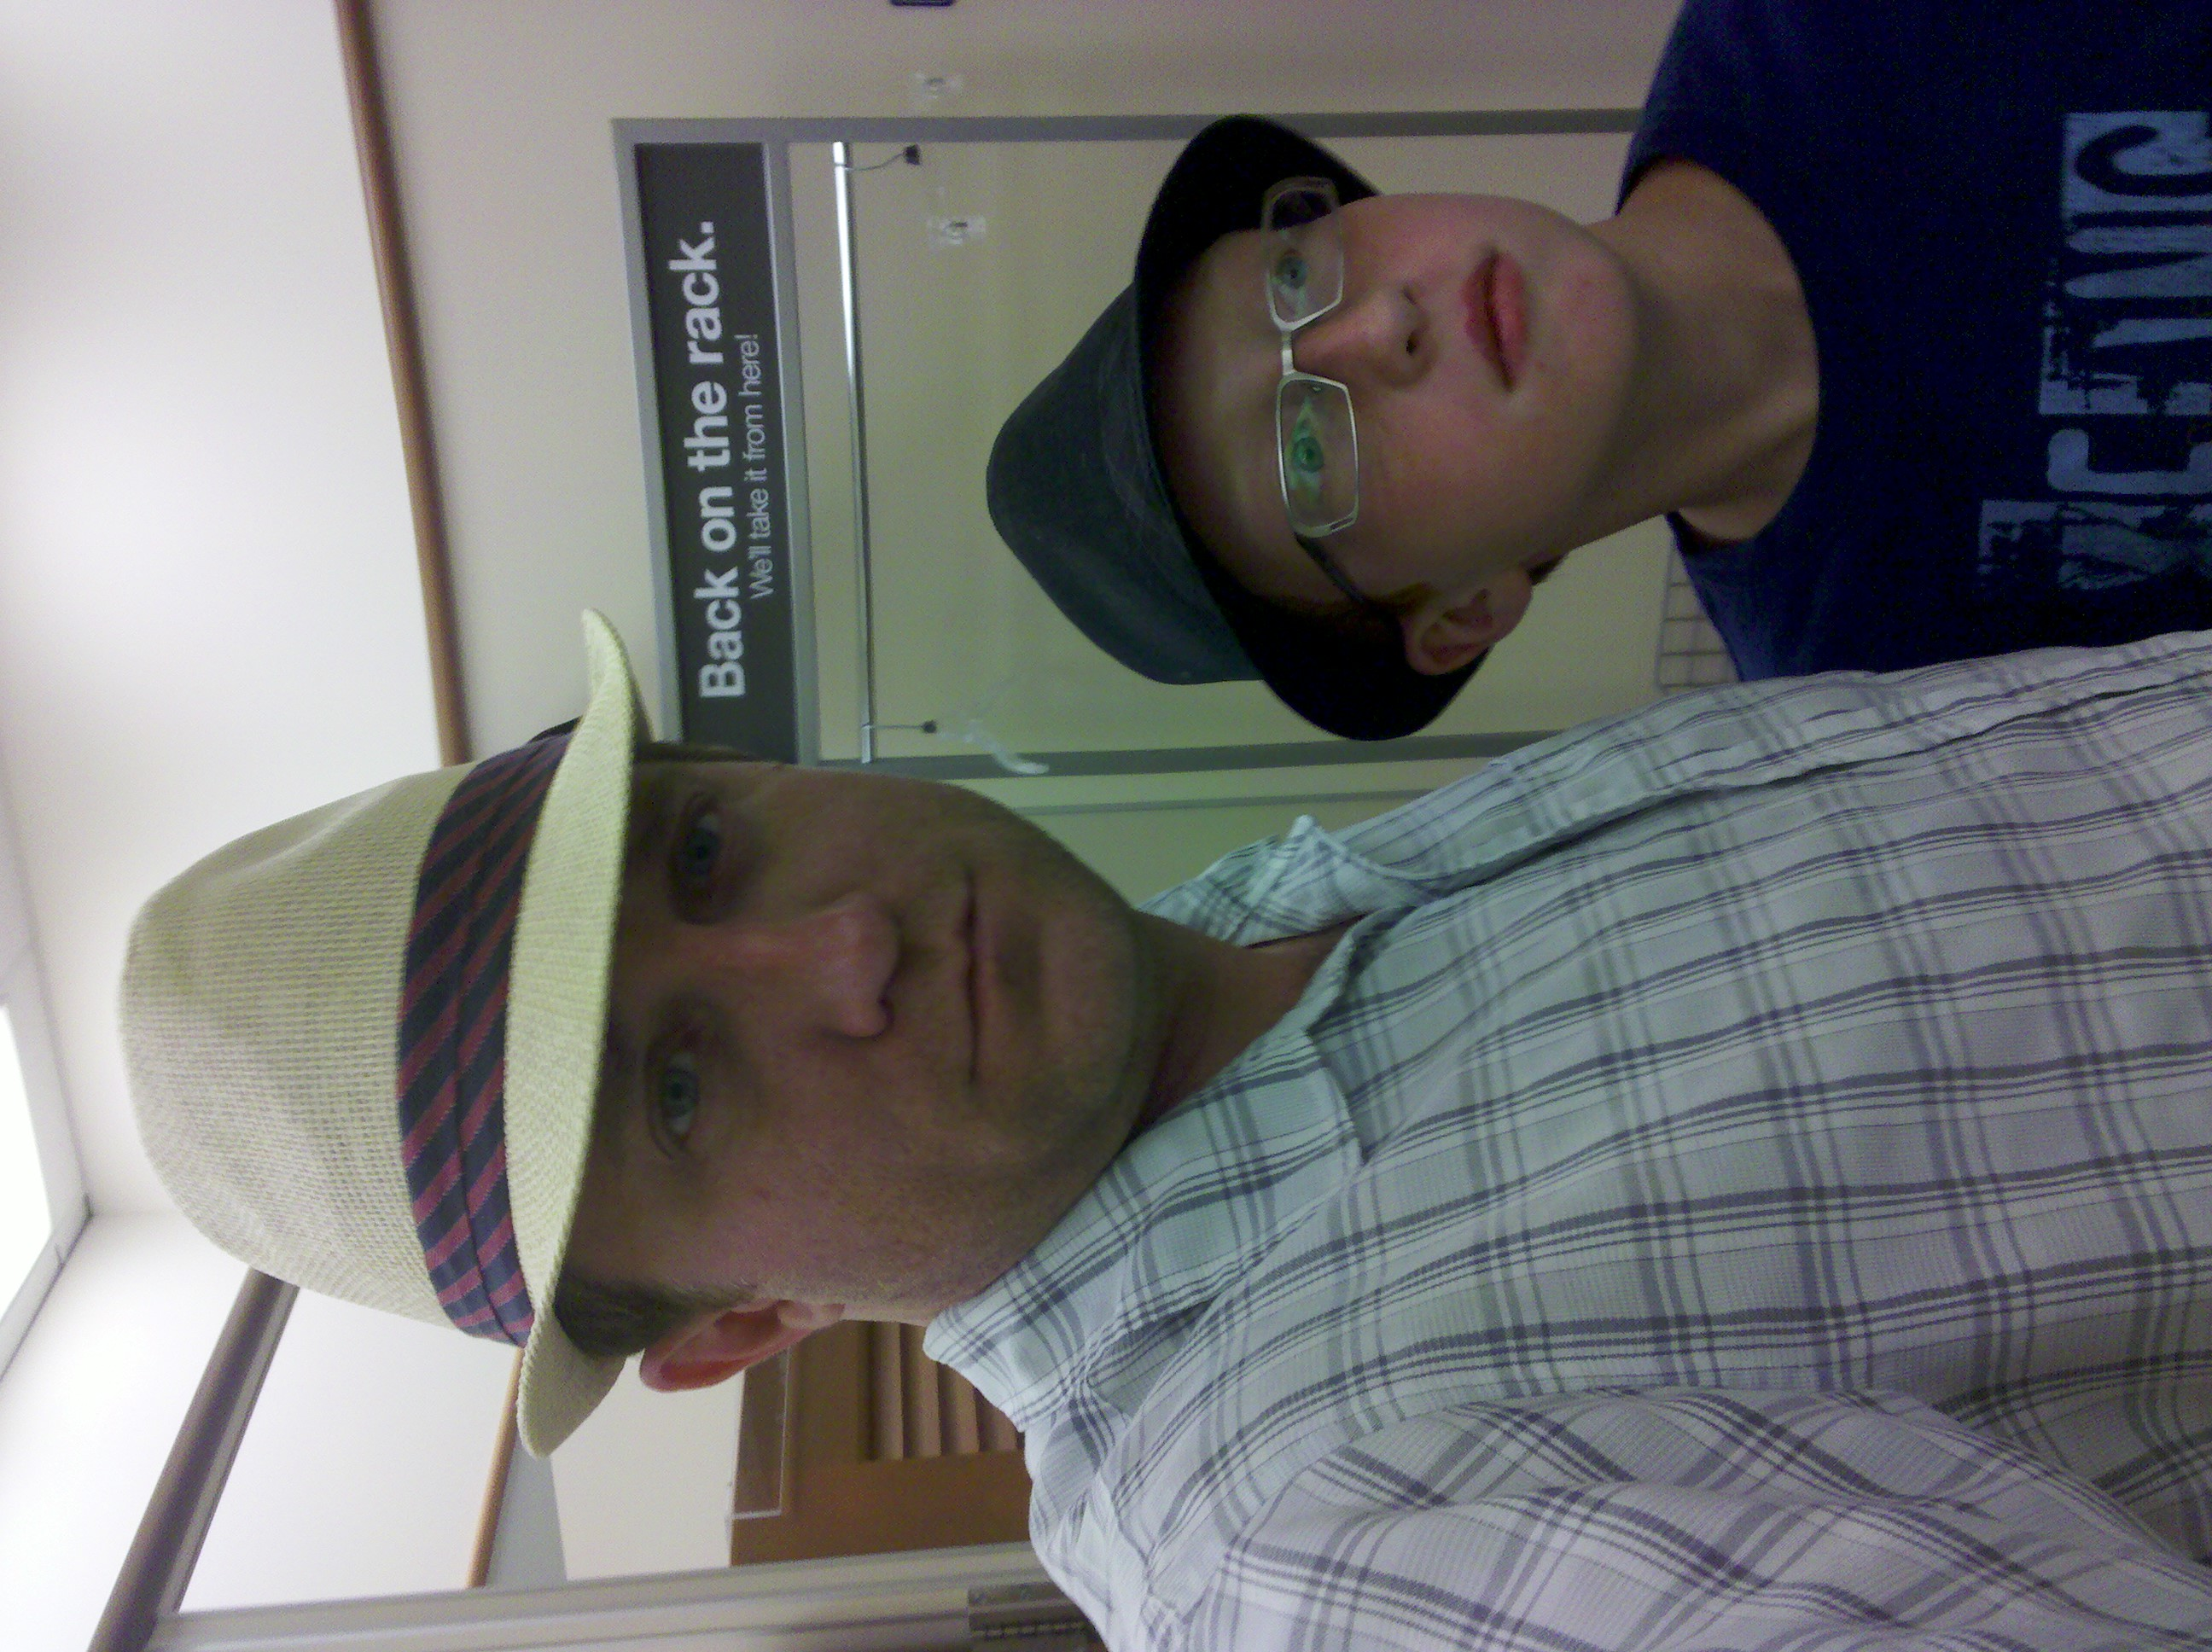 Trying on hats at Kohls in Chesapeake Virginia